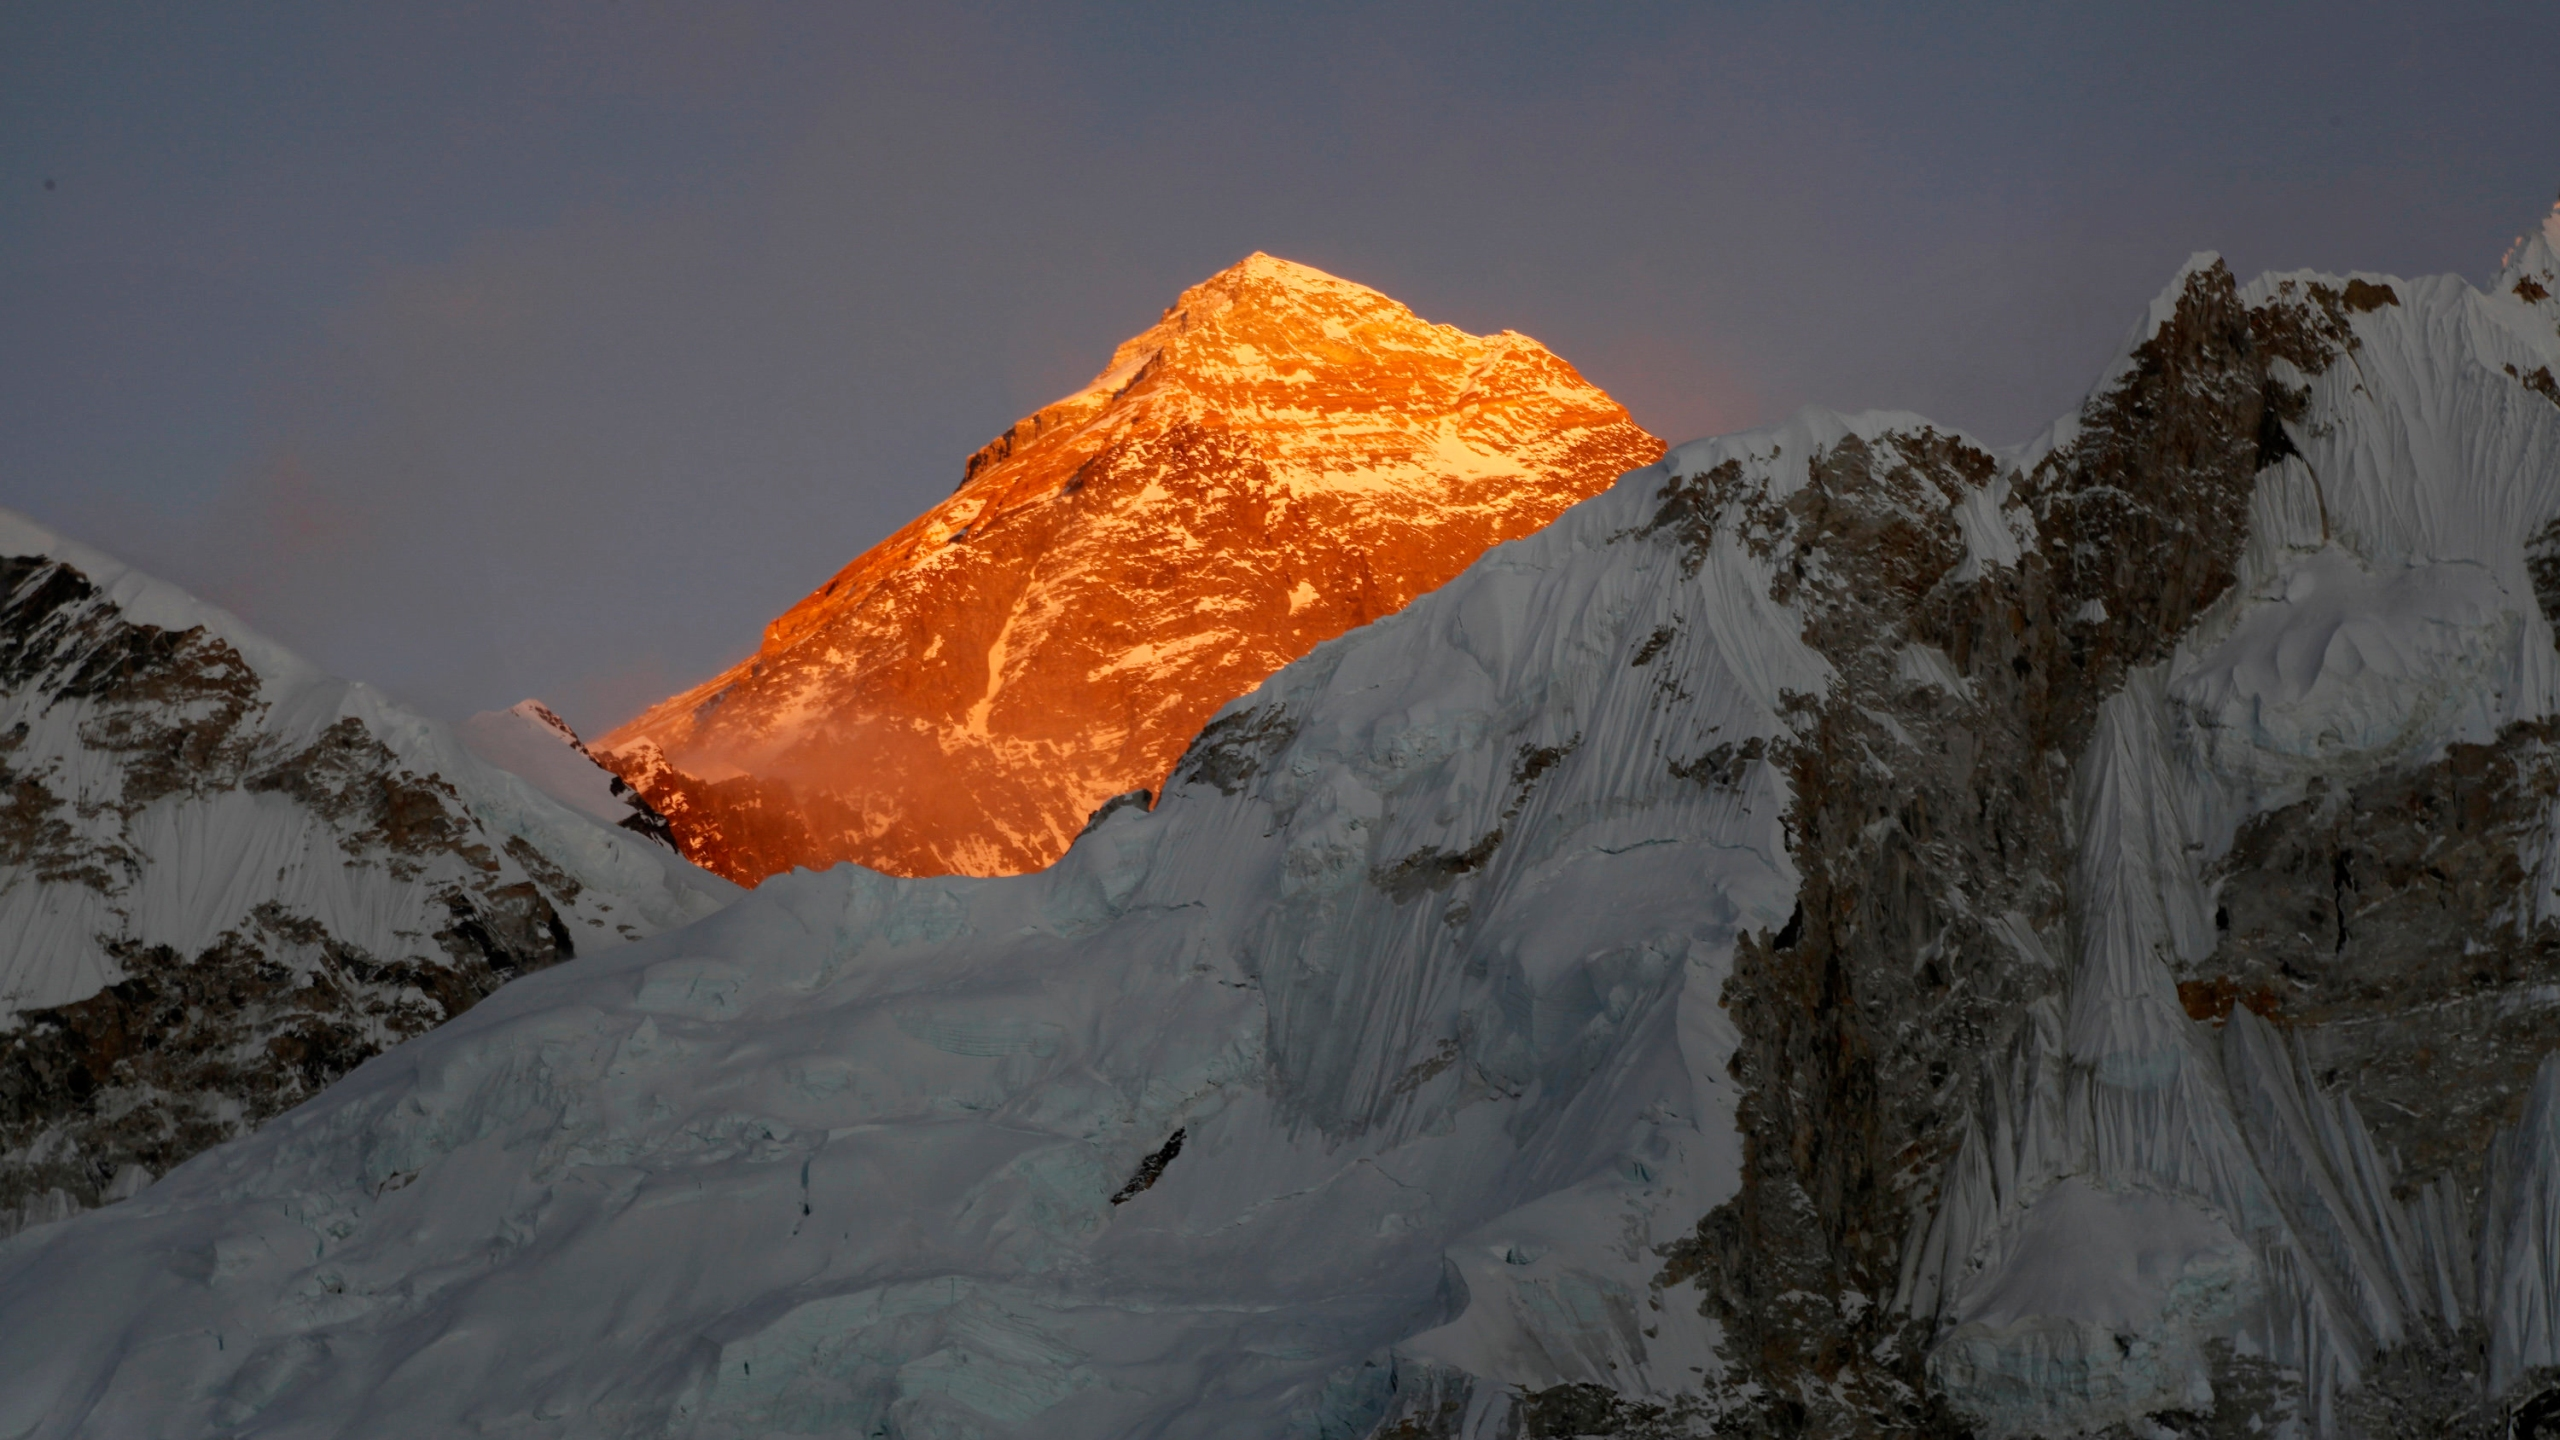 In this Nov. 12, 2015 file photo, Mount Everest is seen from the way to Kalapatthar in Nepal. A year after Mount Everest was closed to climbers as the pandemic swept across the globe, hundreds are making the final push to the summit with only a few more days left in the season, saying they are undeterred by a coronavirus outbreak in base camp. (AP Photo/Tashi Sherpa, File)